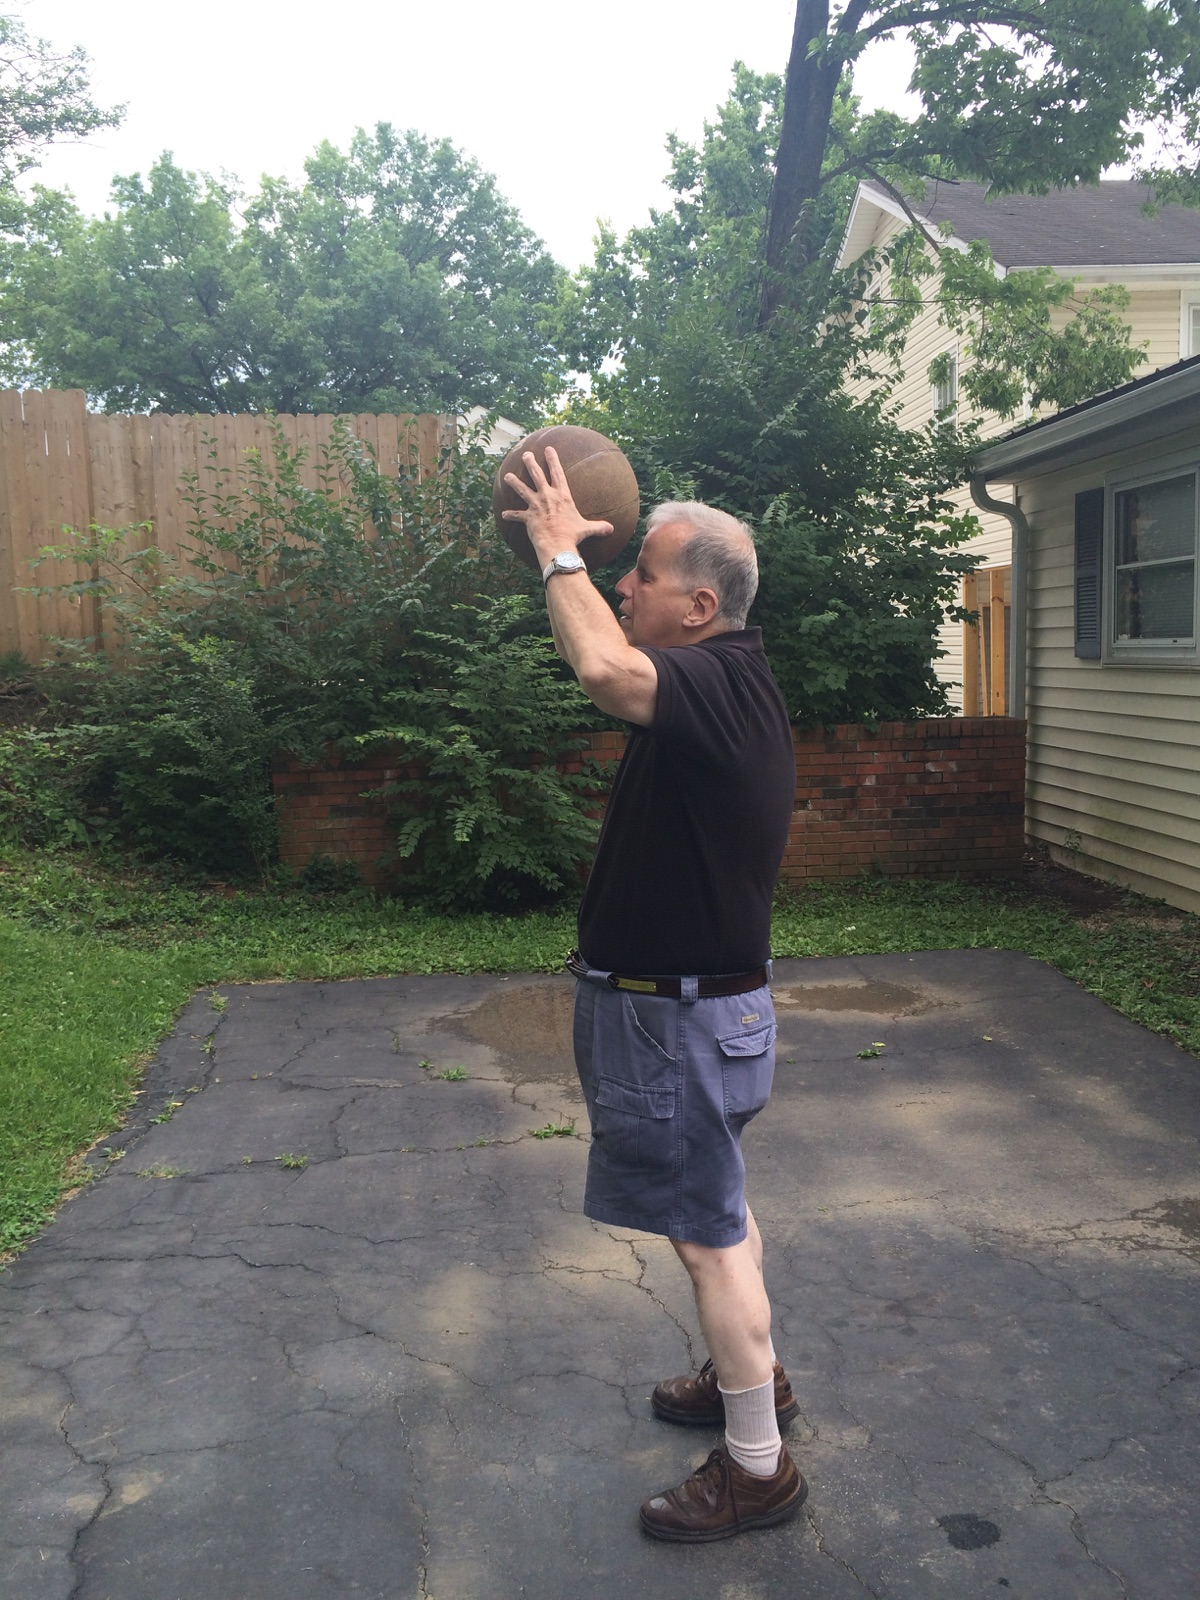 Man in a black t-shirt and jean shorts holding a basketball to his head, arms above his head.